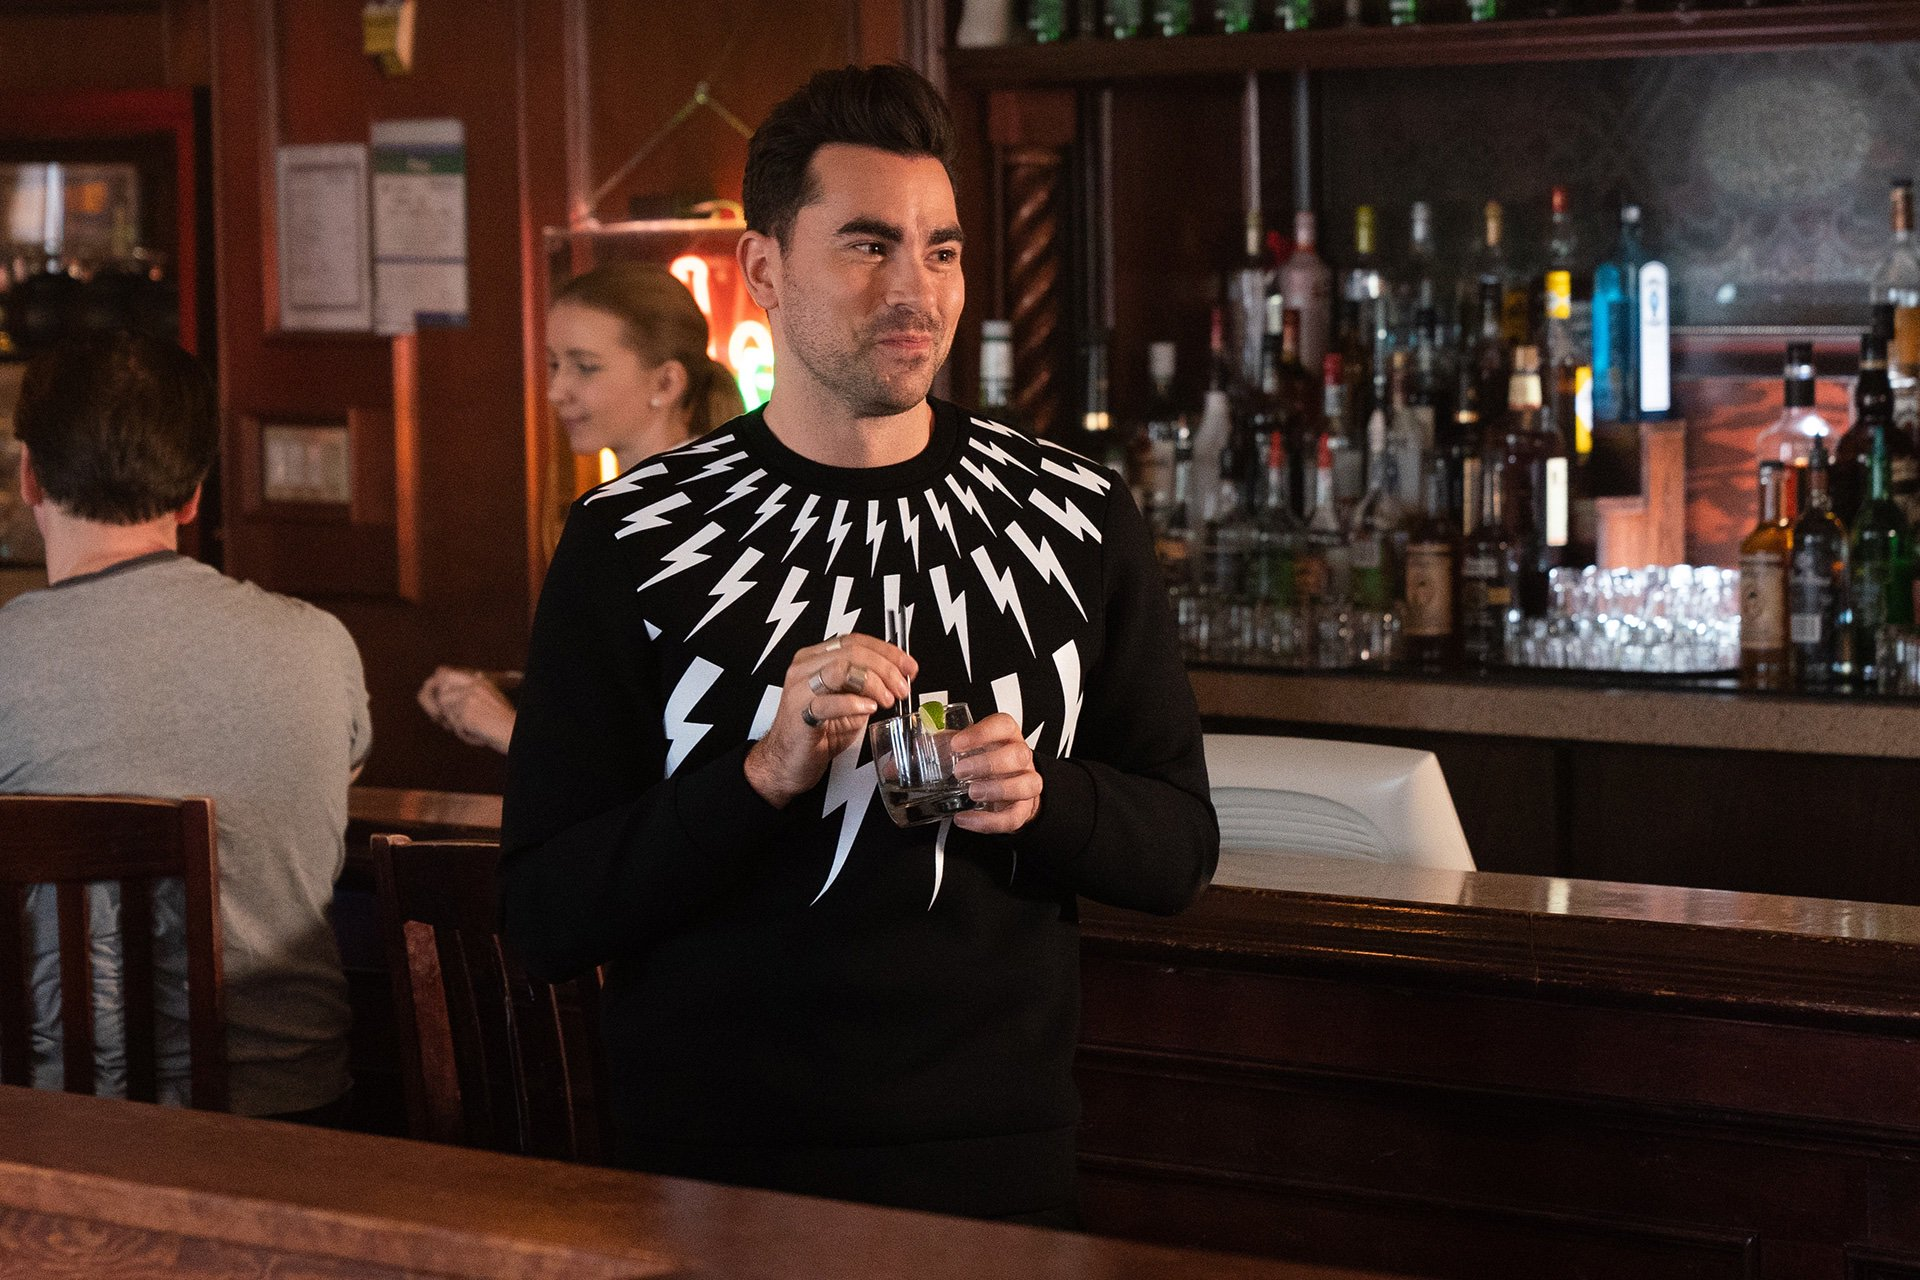 David at a bar in his sweater emblazoned with lightning bolts